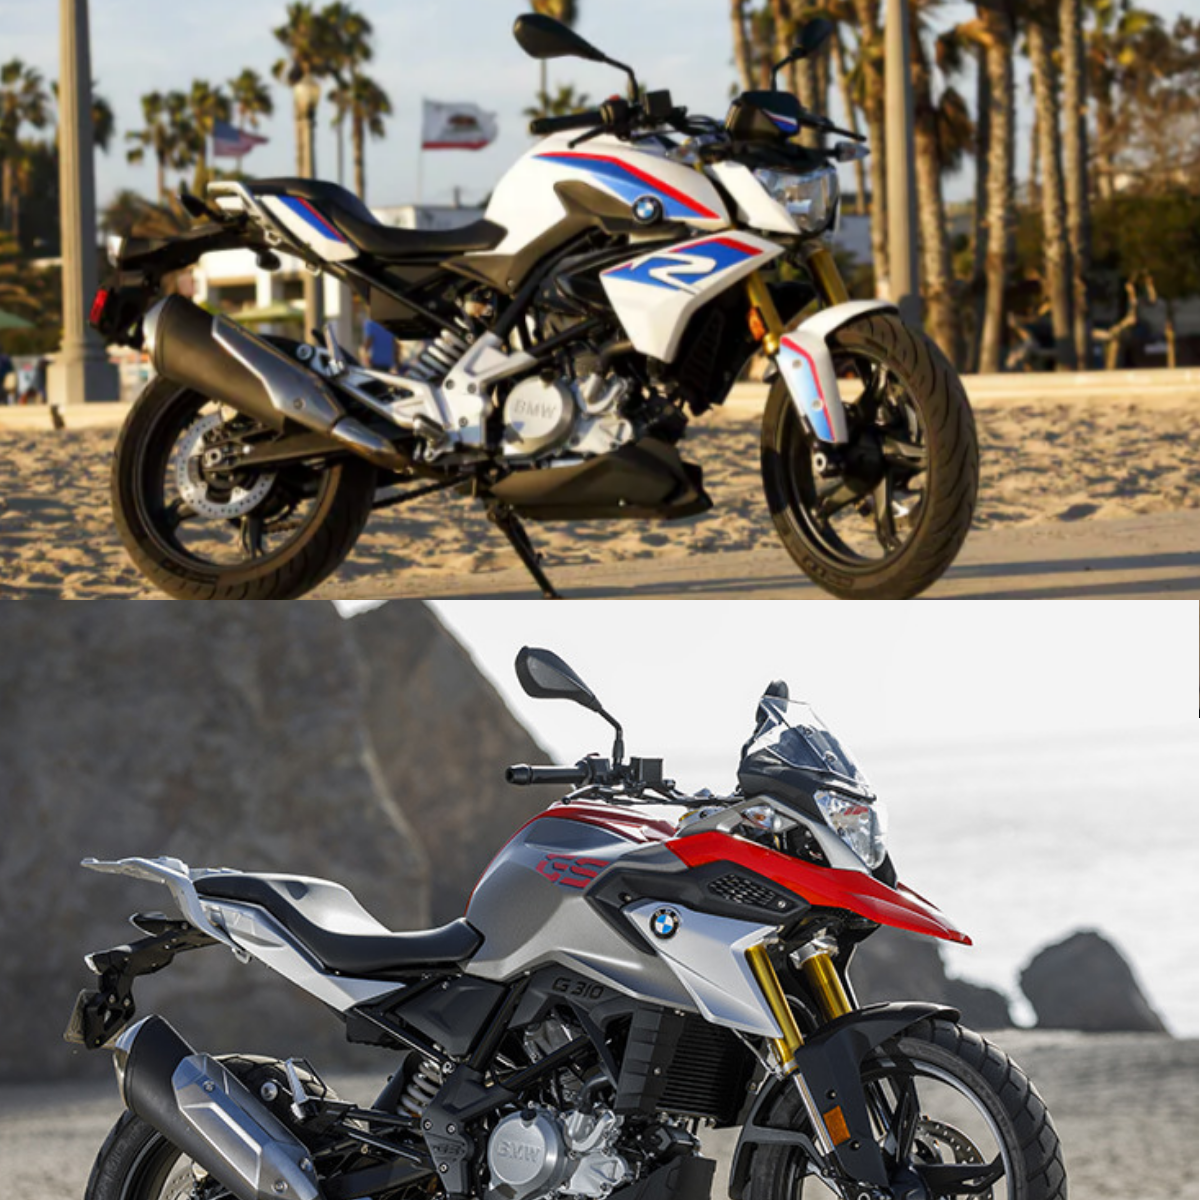 BMW G310R, G310GS Garners Over 1,640 units Sales in India